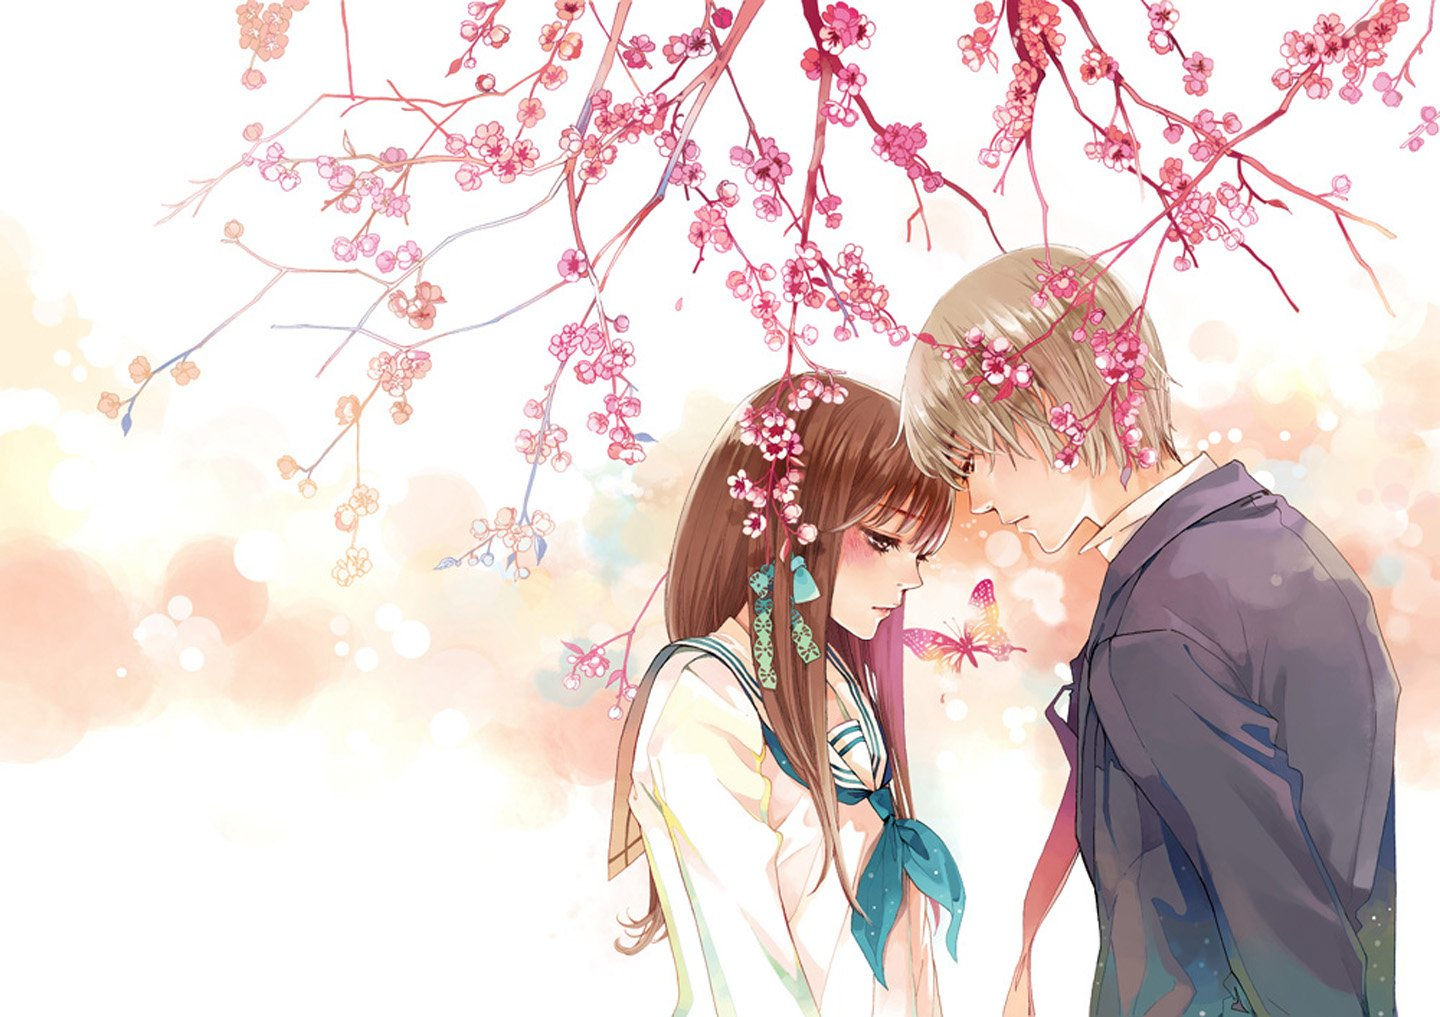 Love Wallpaper With Girlfriend : Anime couple butterfly animal tree sakura love girl male school uniform wallpaper 1440x1017 ...